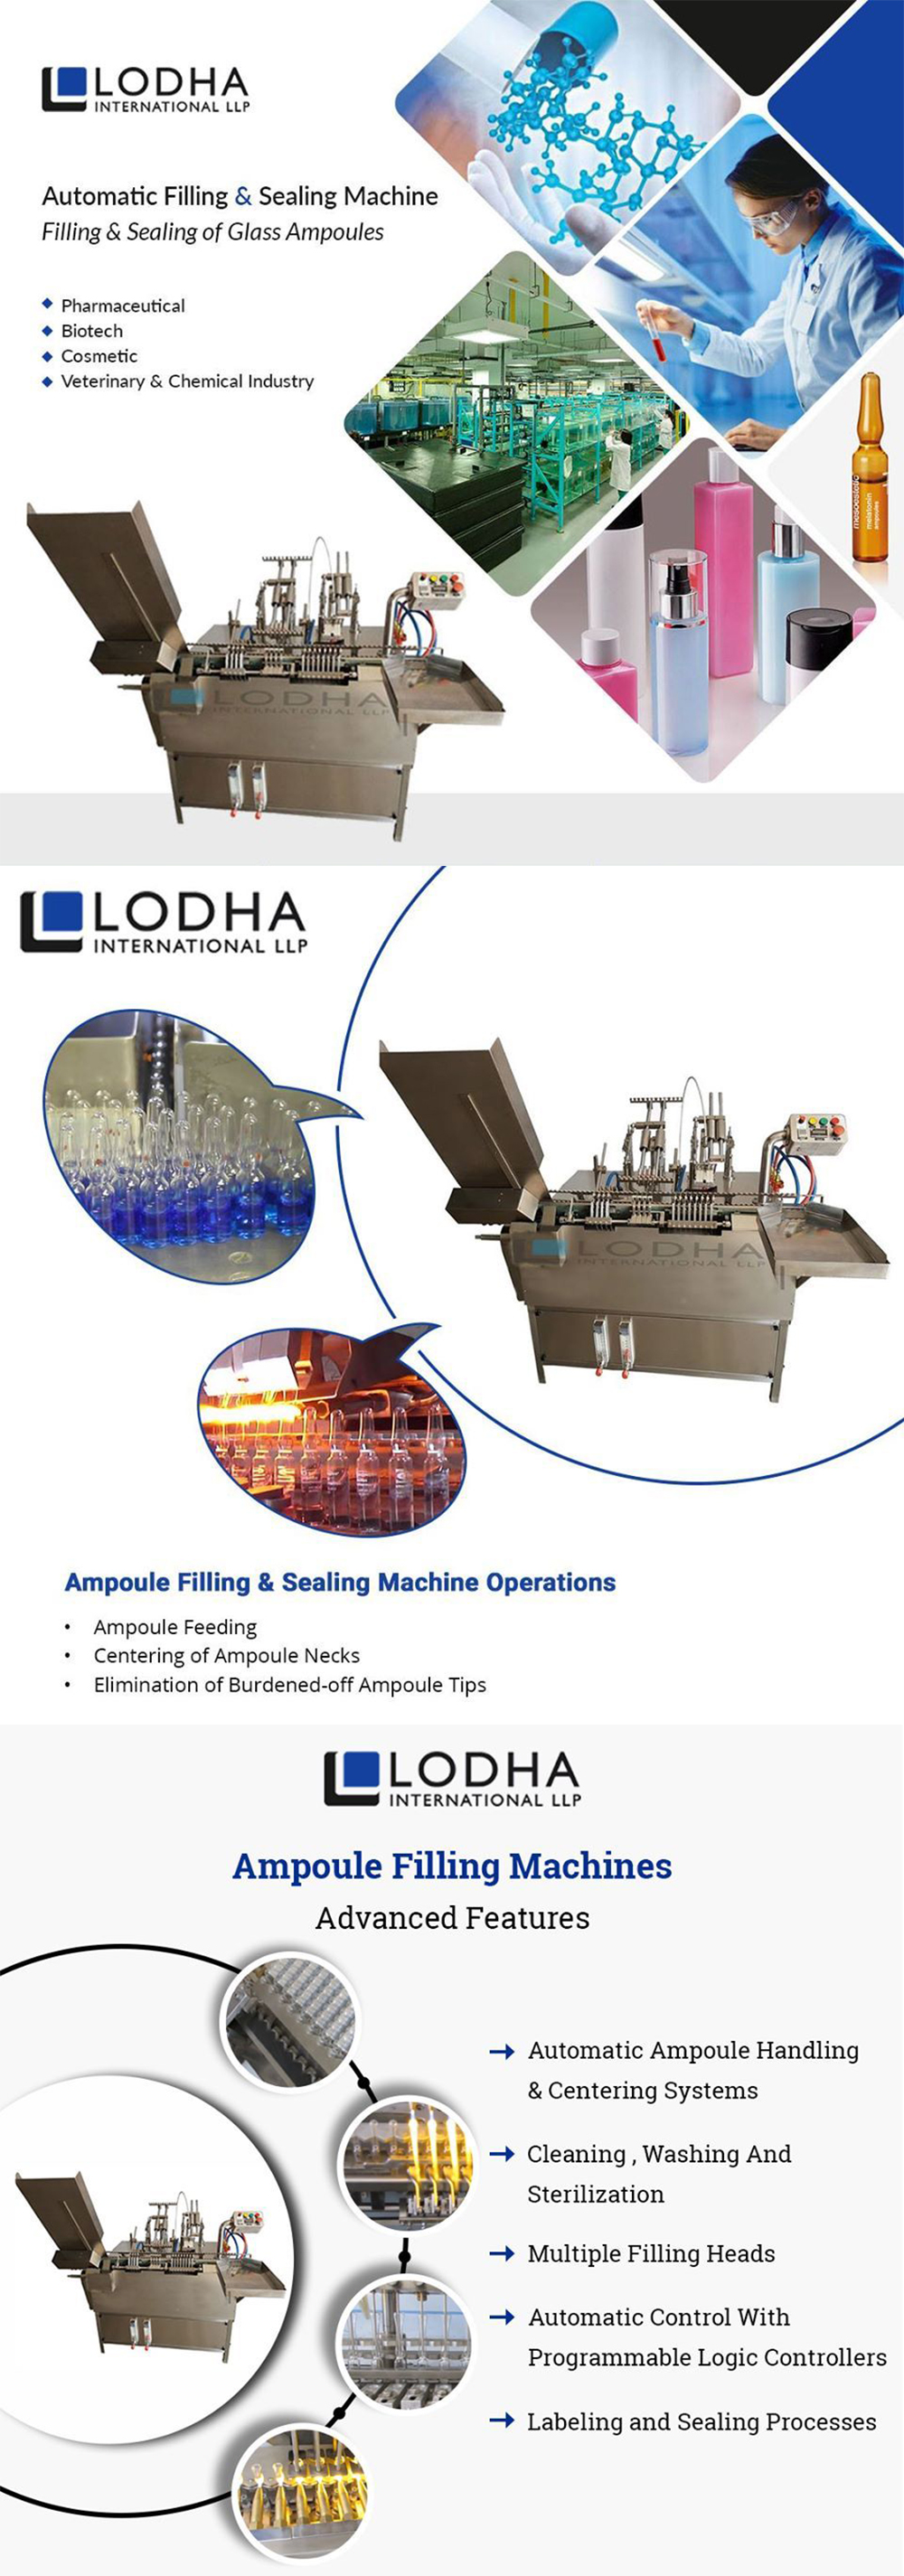 Servo-based Ampoule Filling Machine Market in the USA and Europe